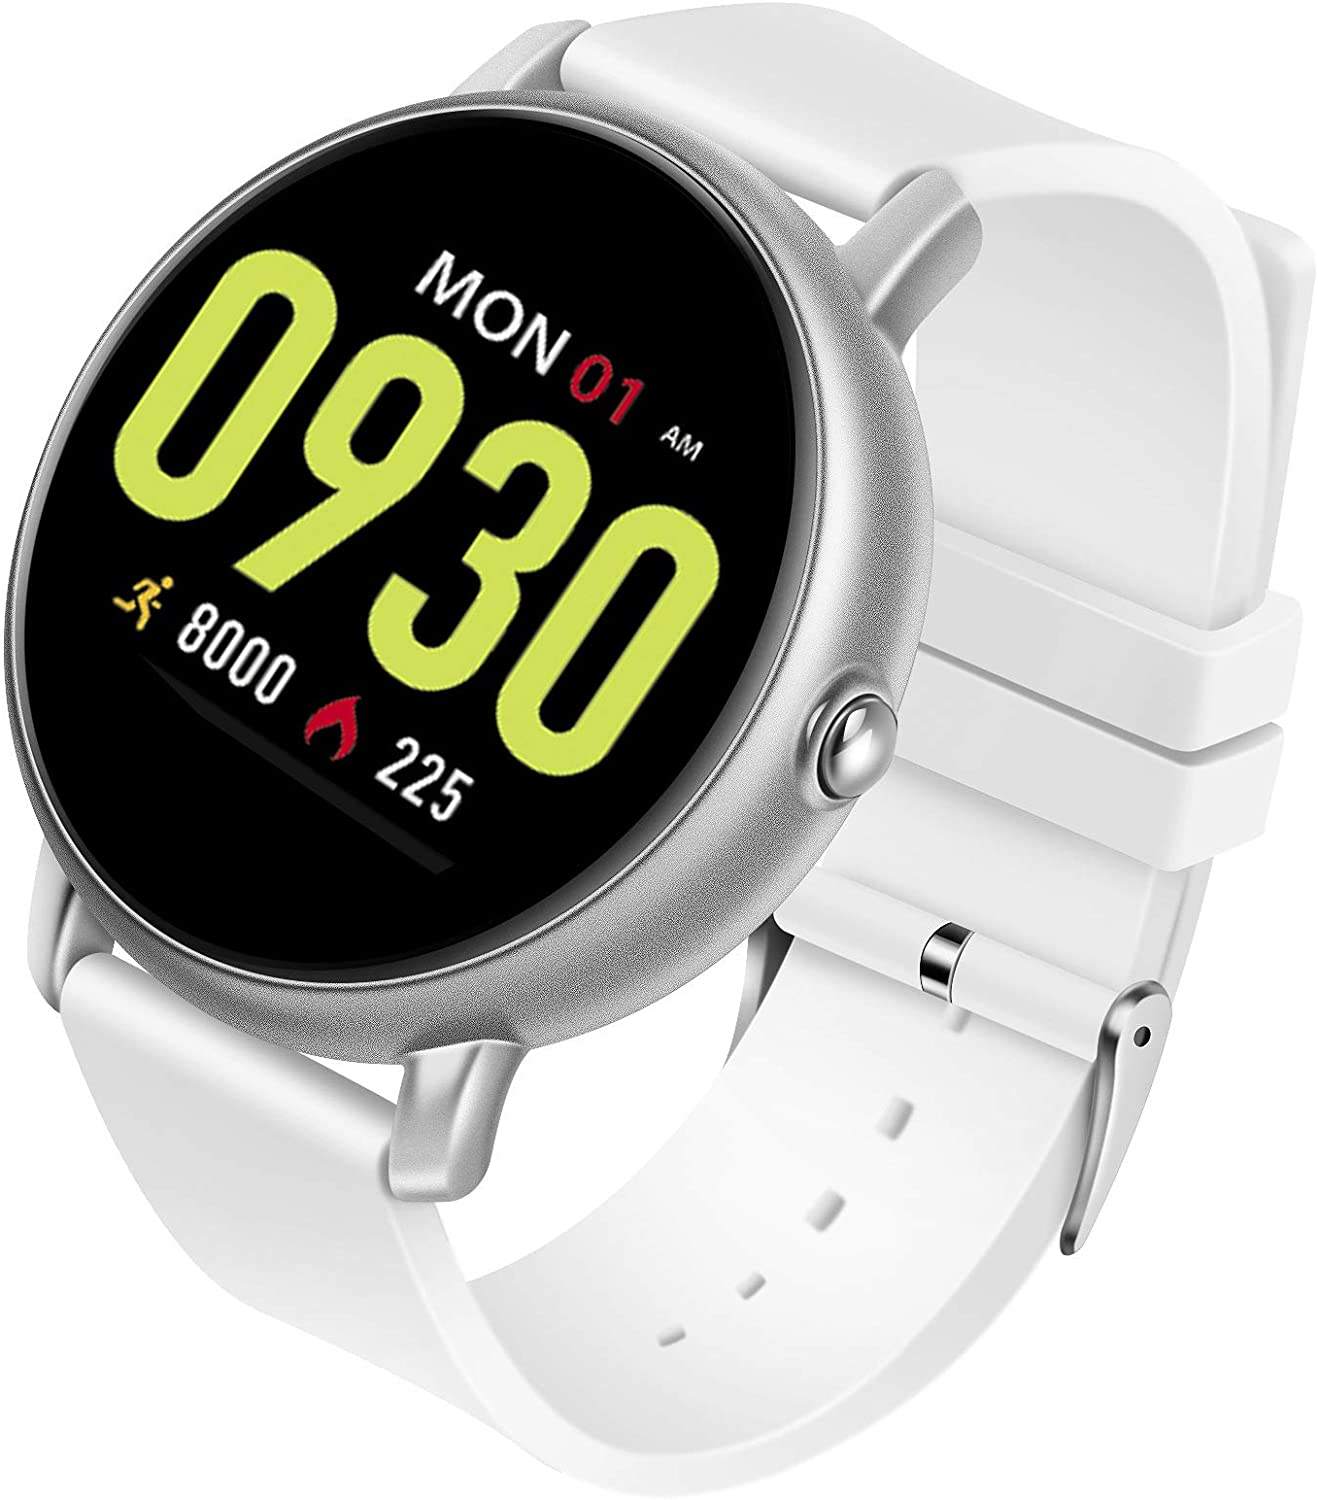 Smart Sports Watch, Fitness Tracker, Heart Rate Blood Pressure Monitoring, IP68 Waterproof, Smart Reminder, blueeetooth Call, Message Push